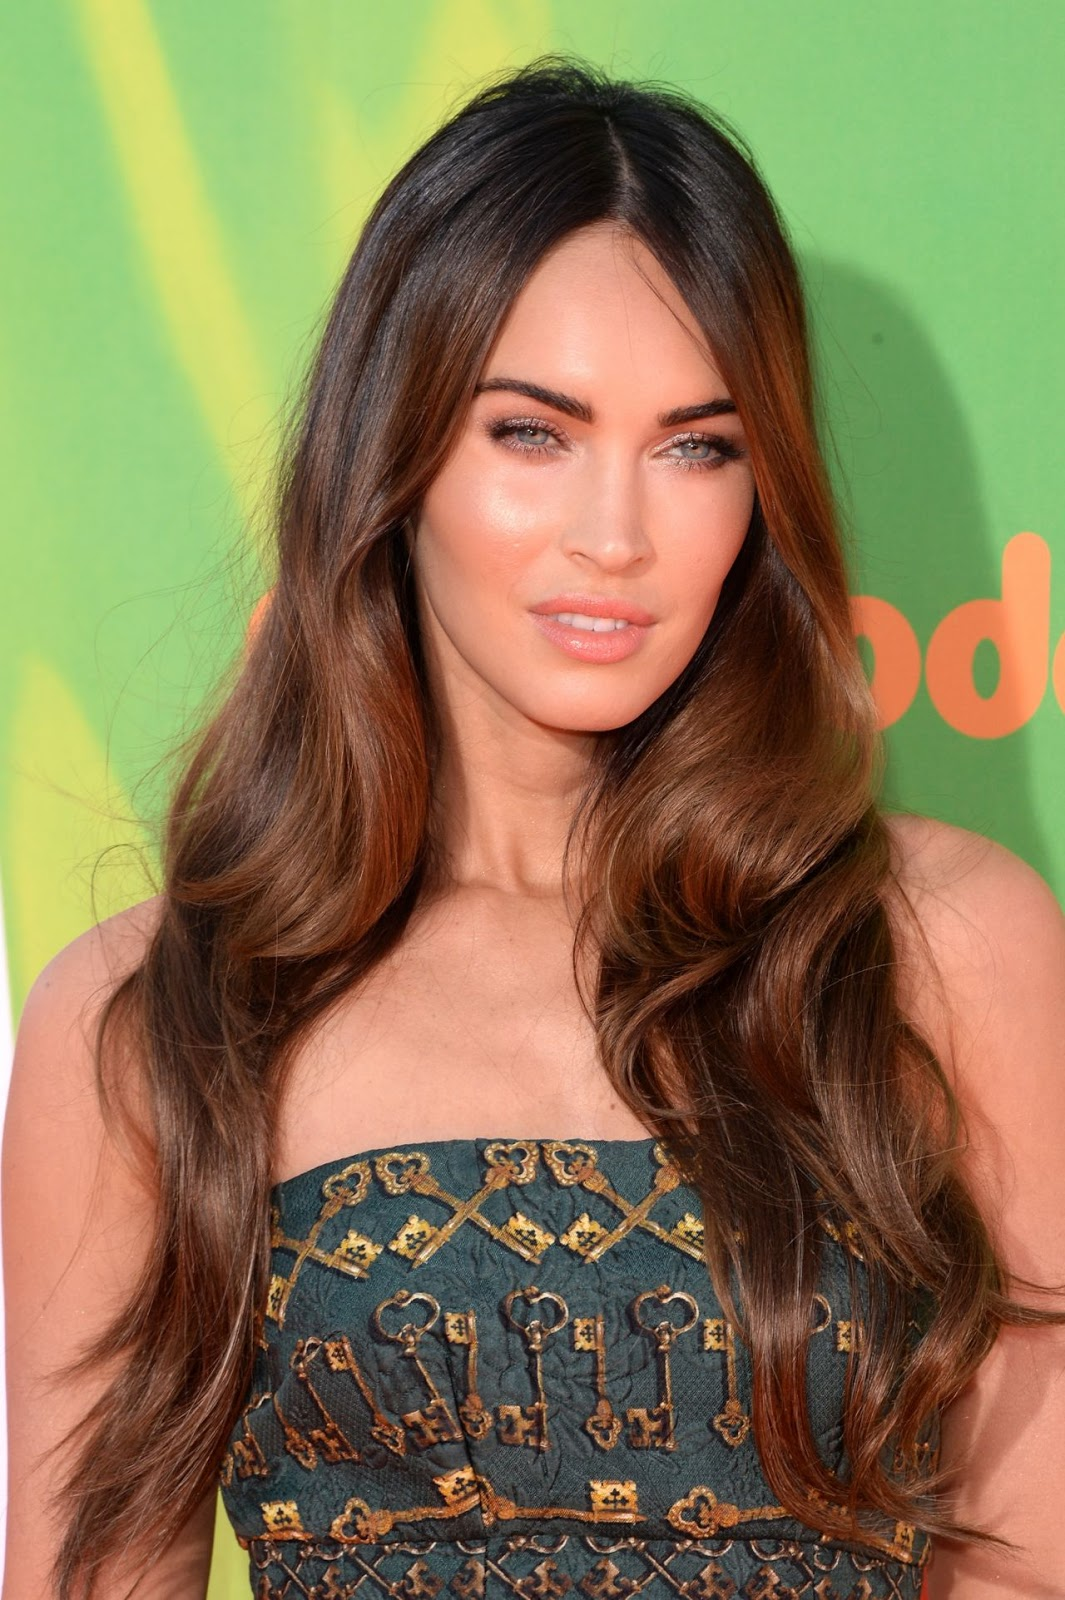 Megan Fox at the Kids Choice Sports Awards - Photos